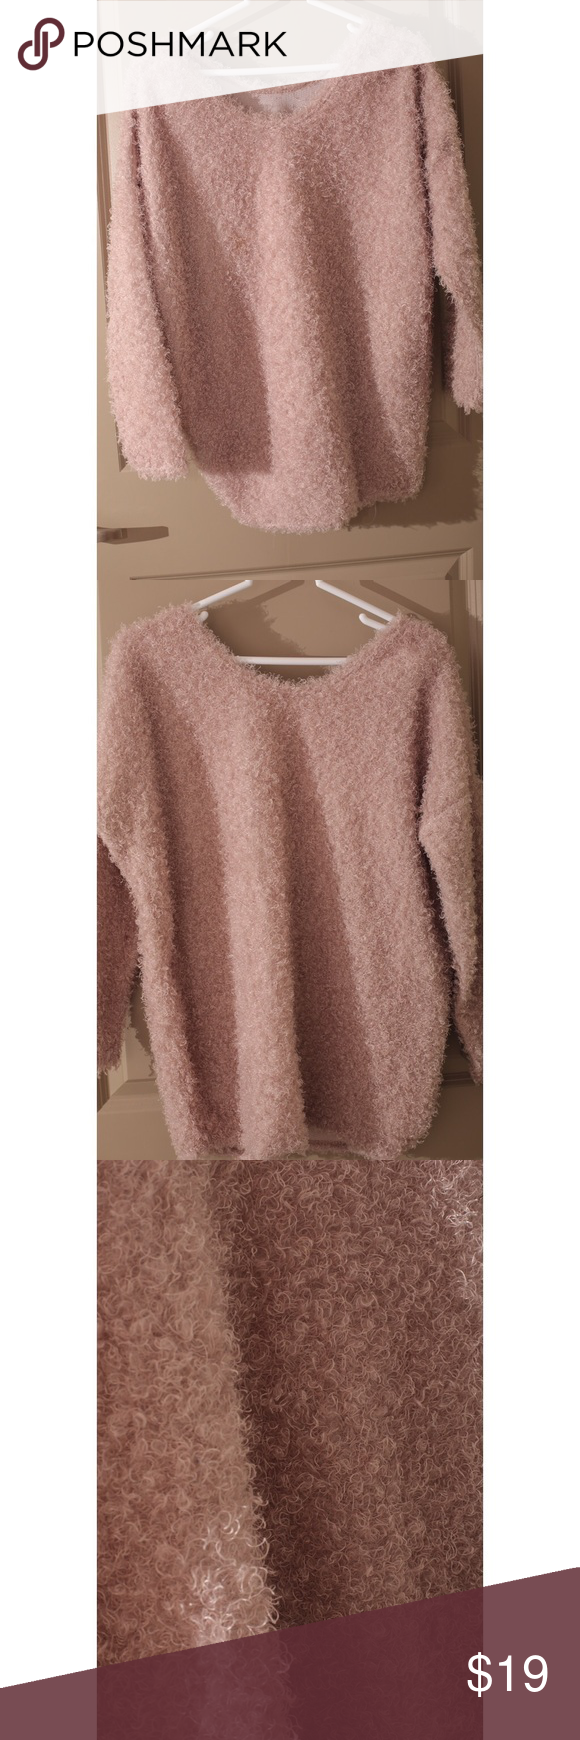 Light pink sweater | Outlets, Customer support and Delivery